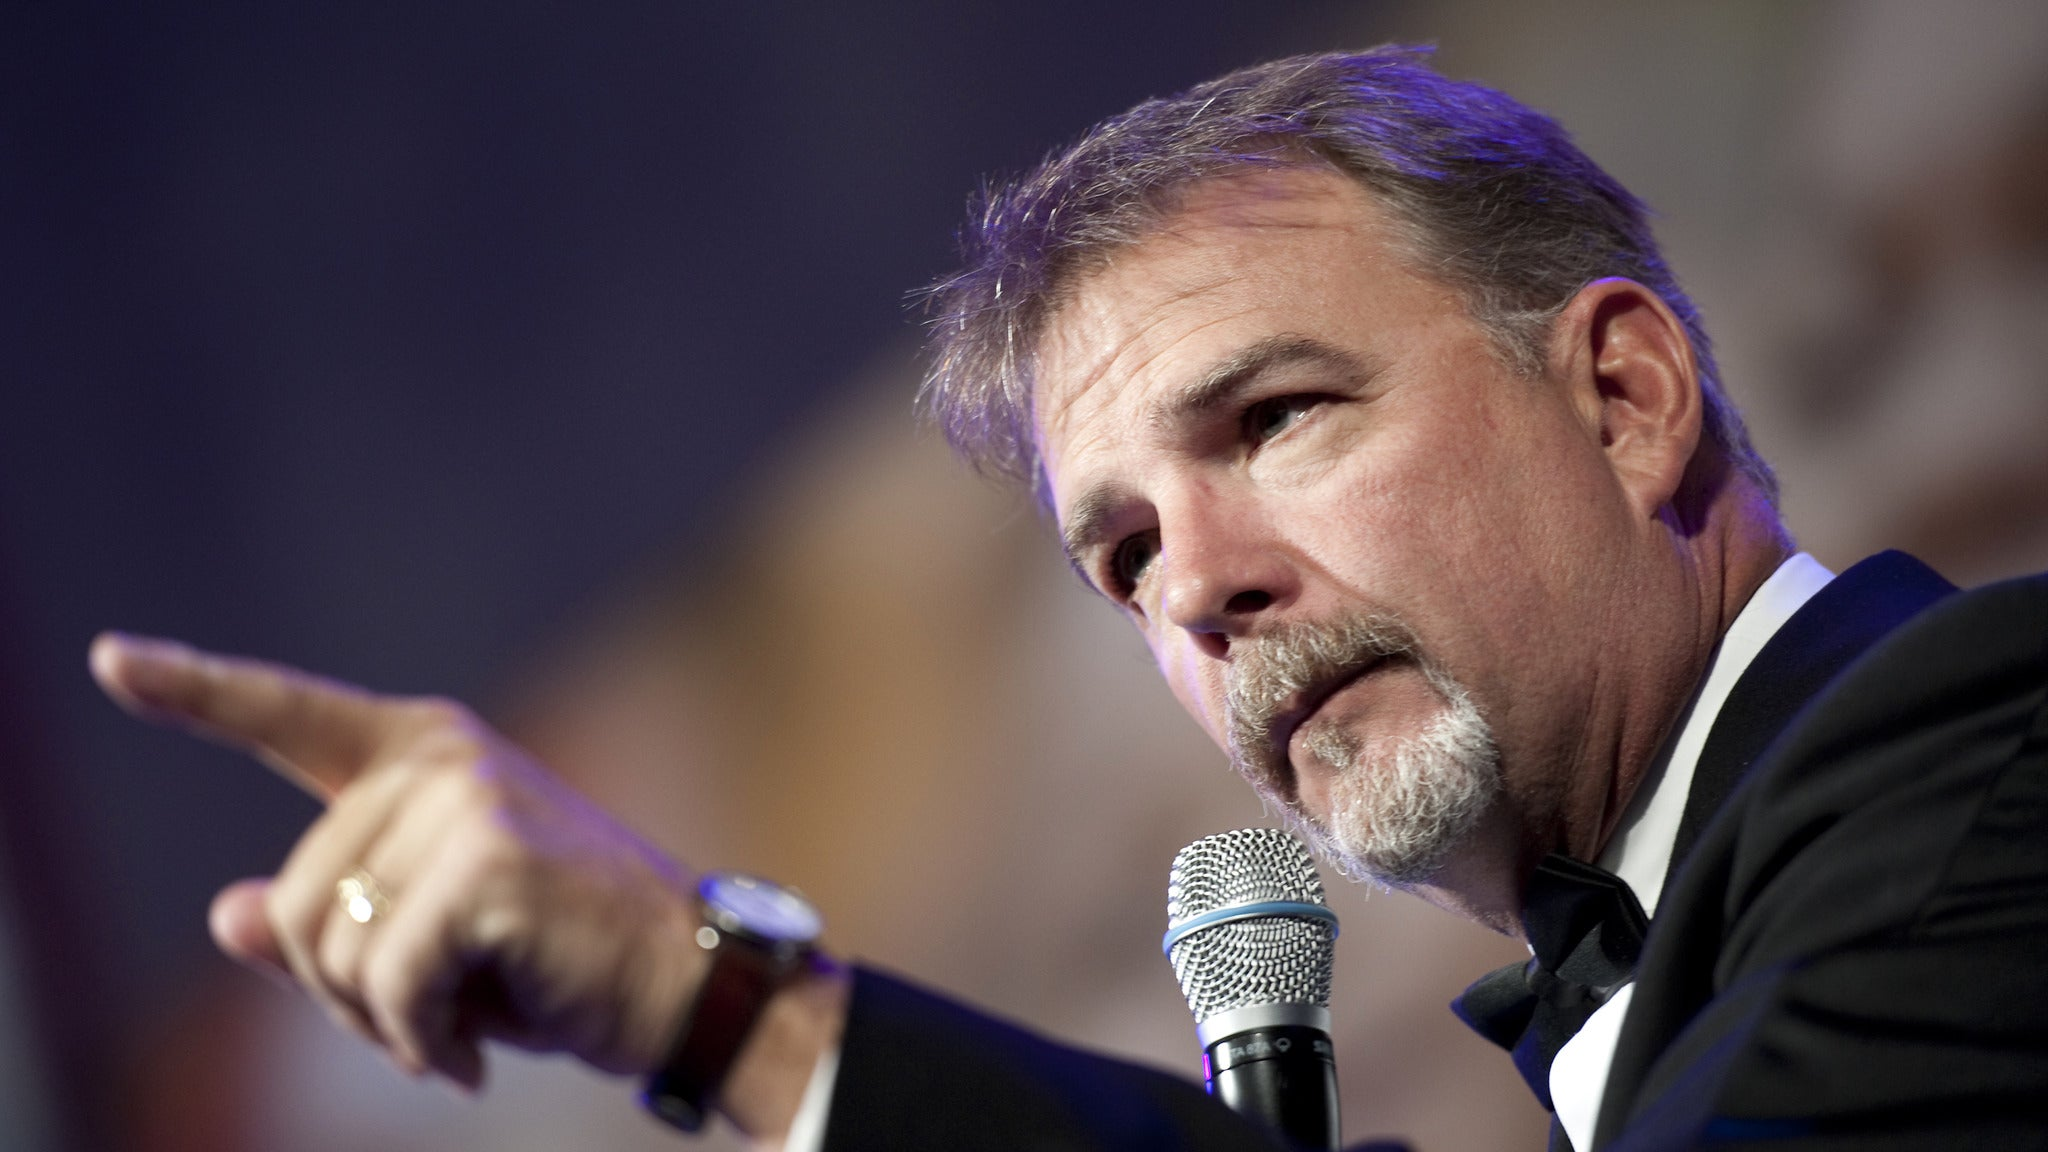 Bill Engvall at Charles F. Dodge City Center Pembroke Pines